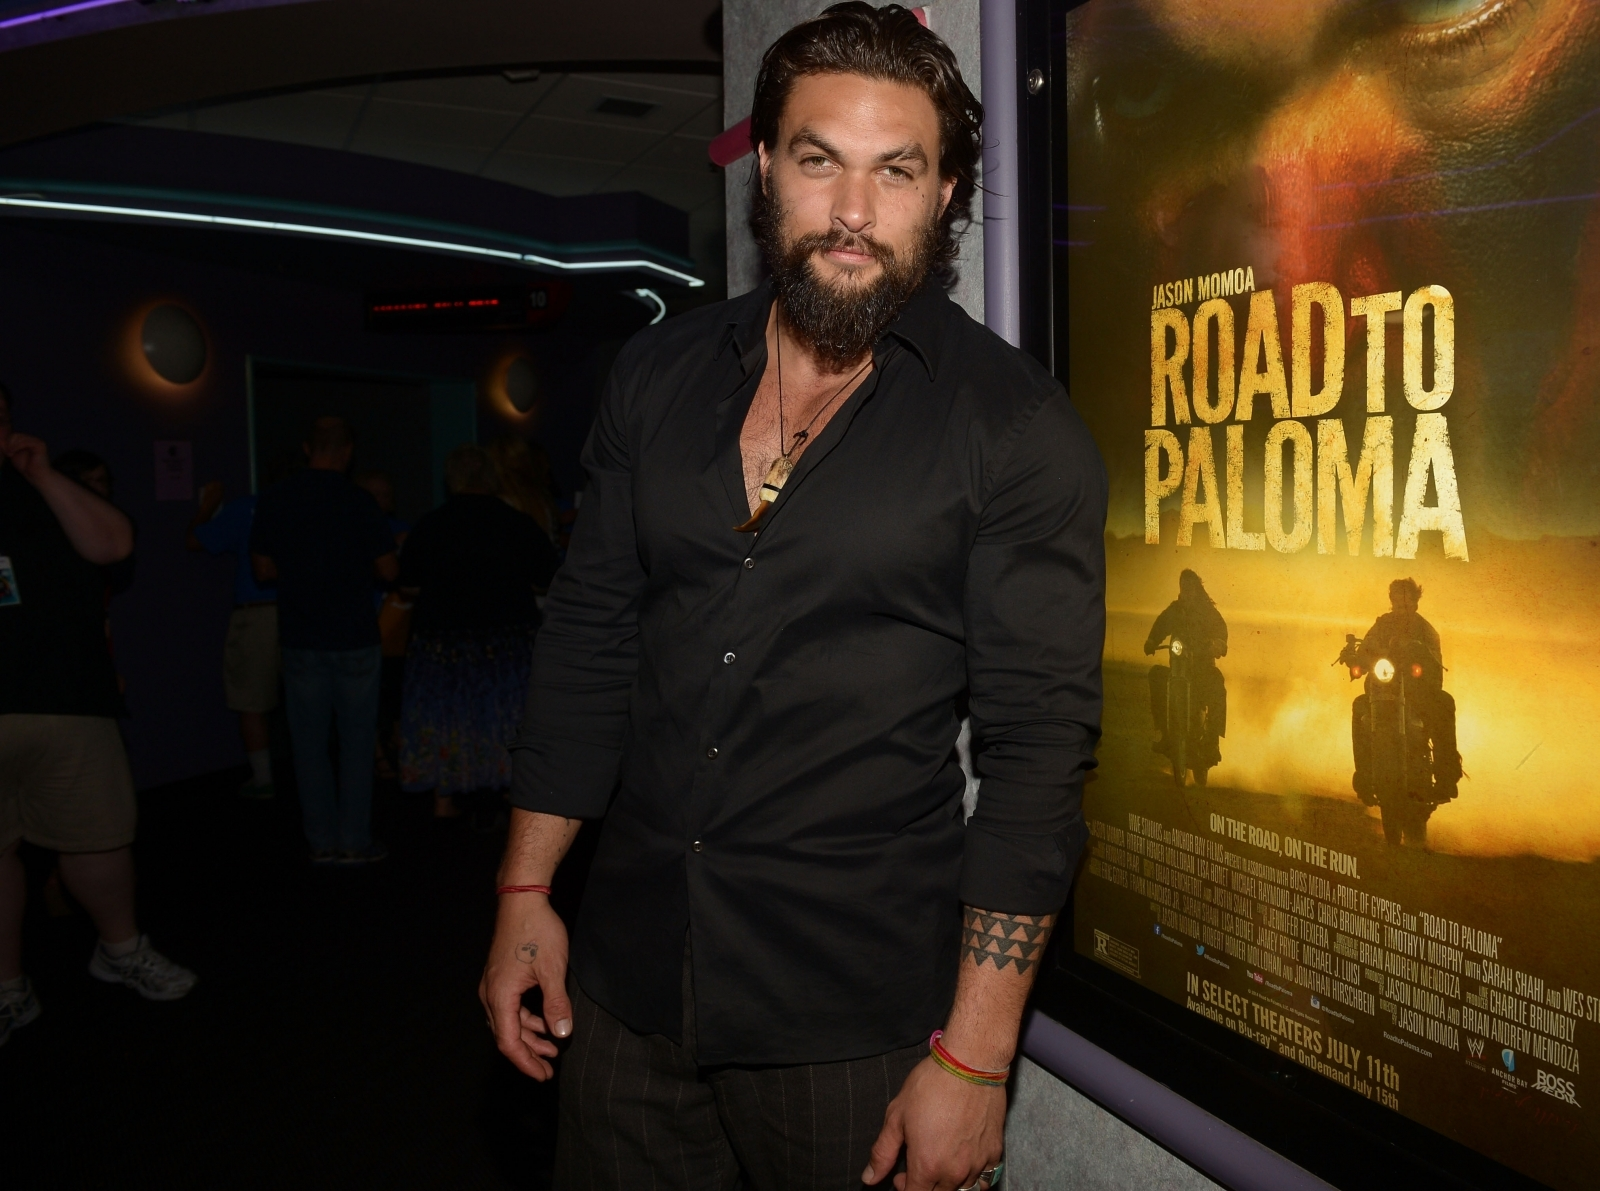 Jason Momoa Apologizes 'With A Heavy Heart' For 'Tasteless' 2011 Rape Joke